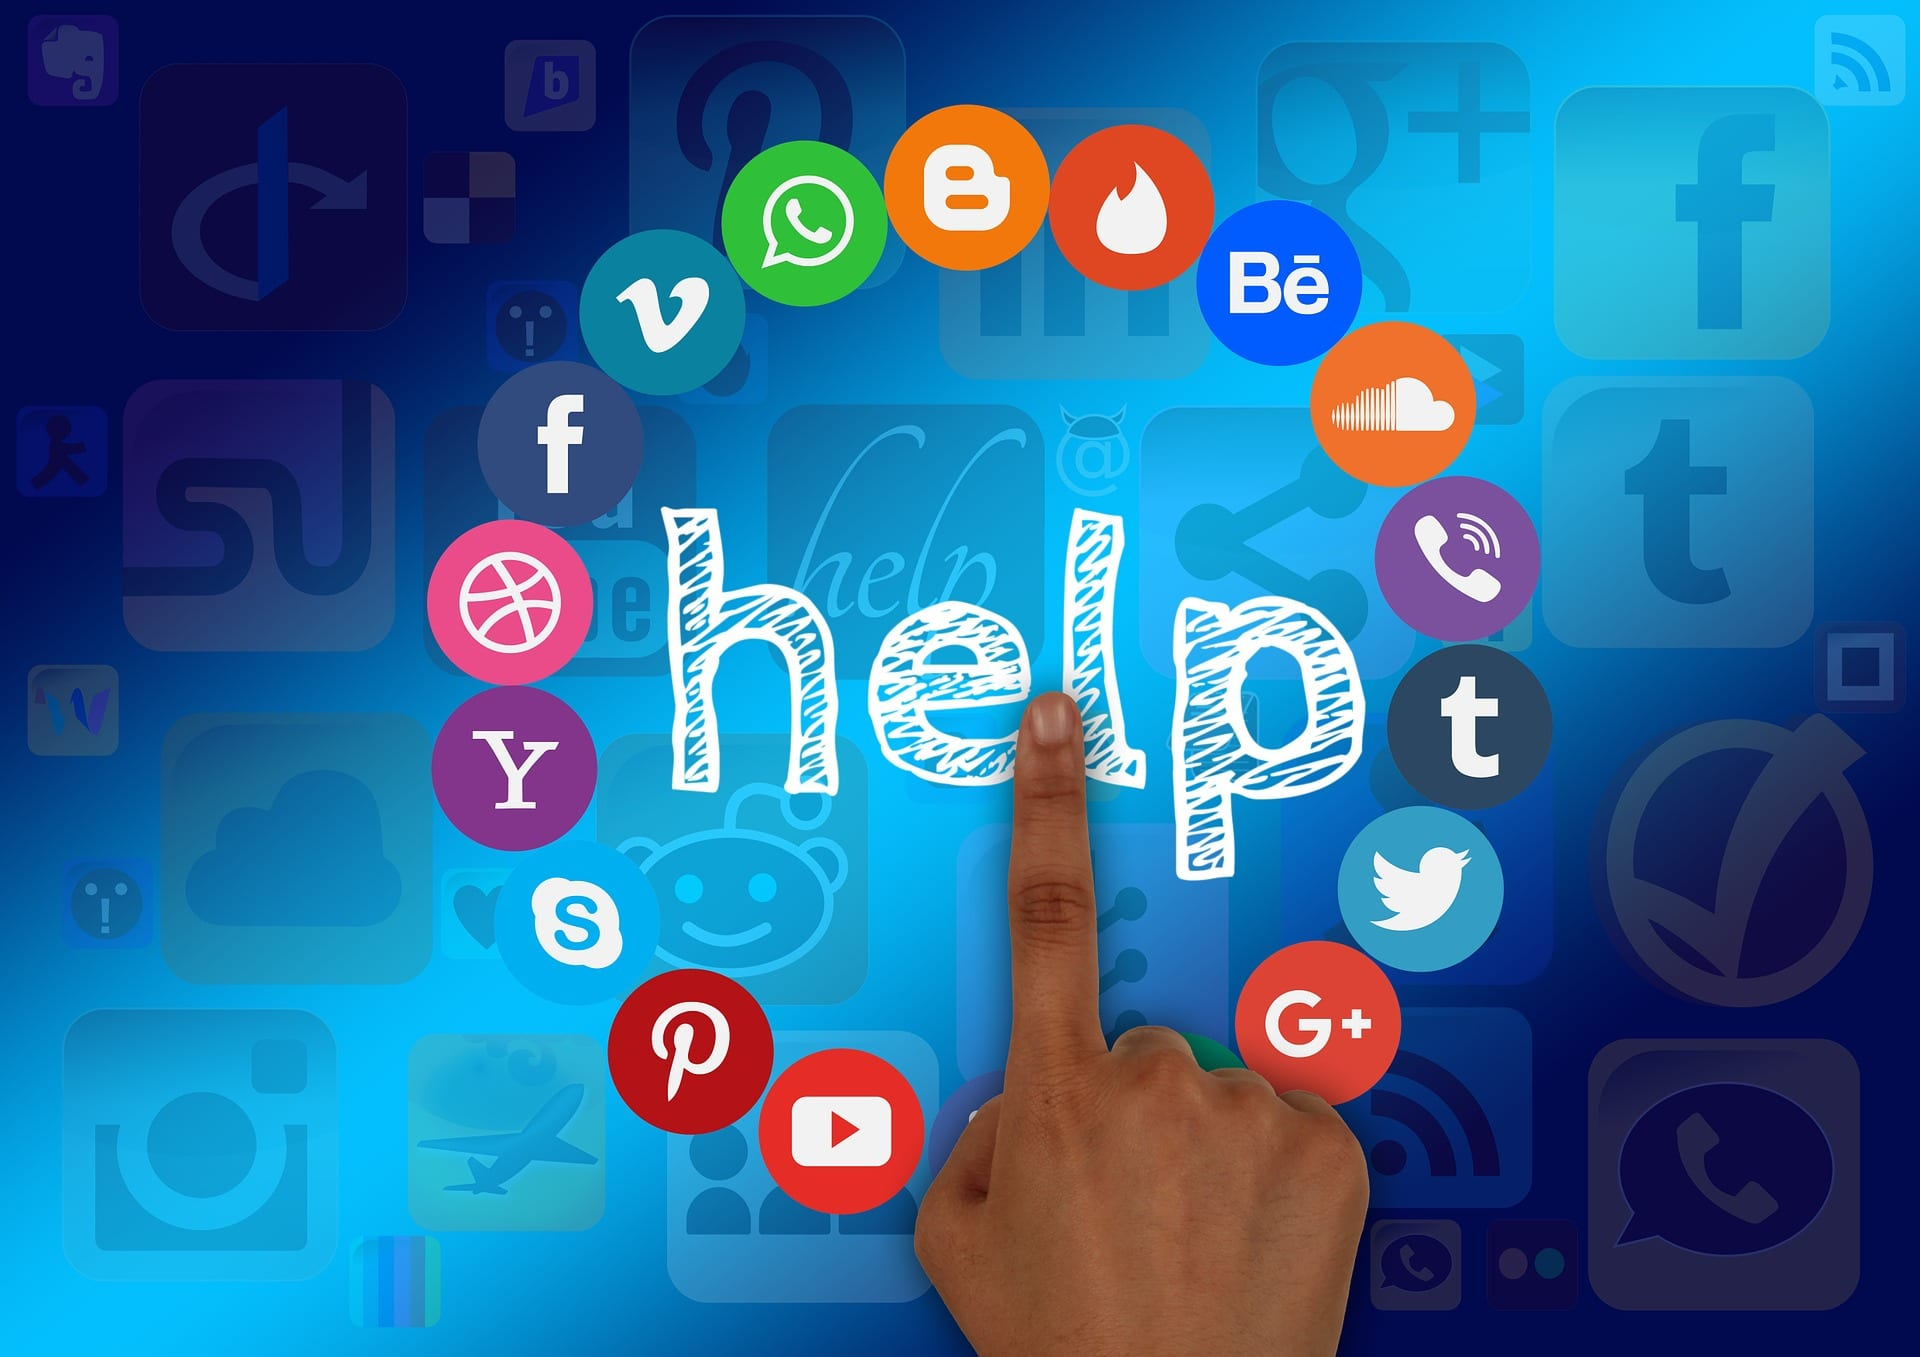 Is poor service letting down your social media strategy?